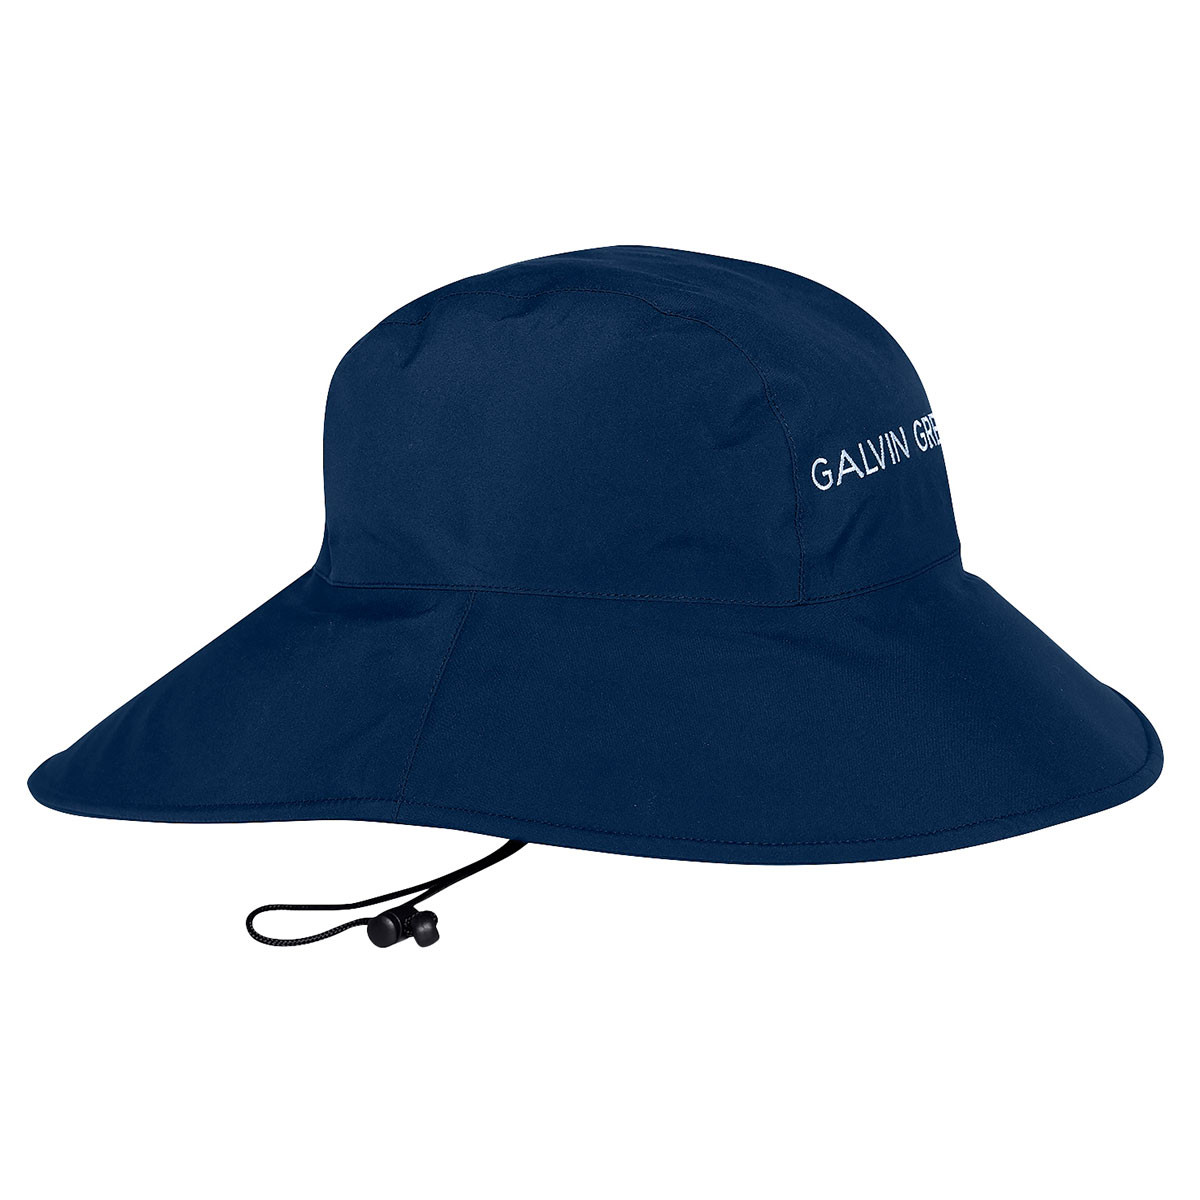 2ee4e6739 Galvin Green AW19 Mens Waterproof Aqua Gore-Tex Golf Bucket Hat